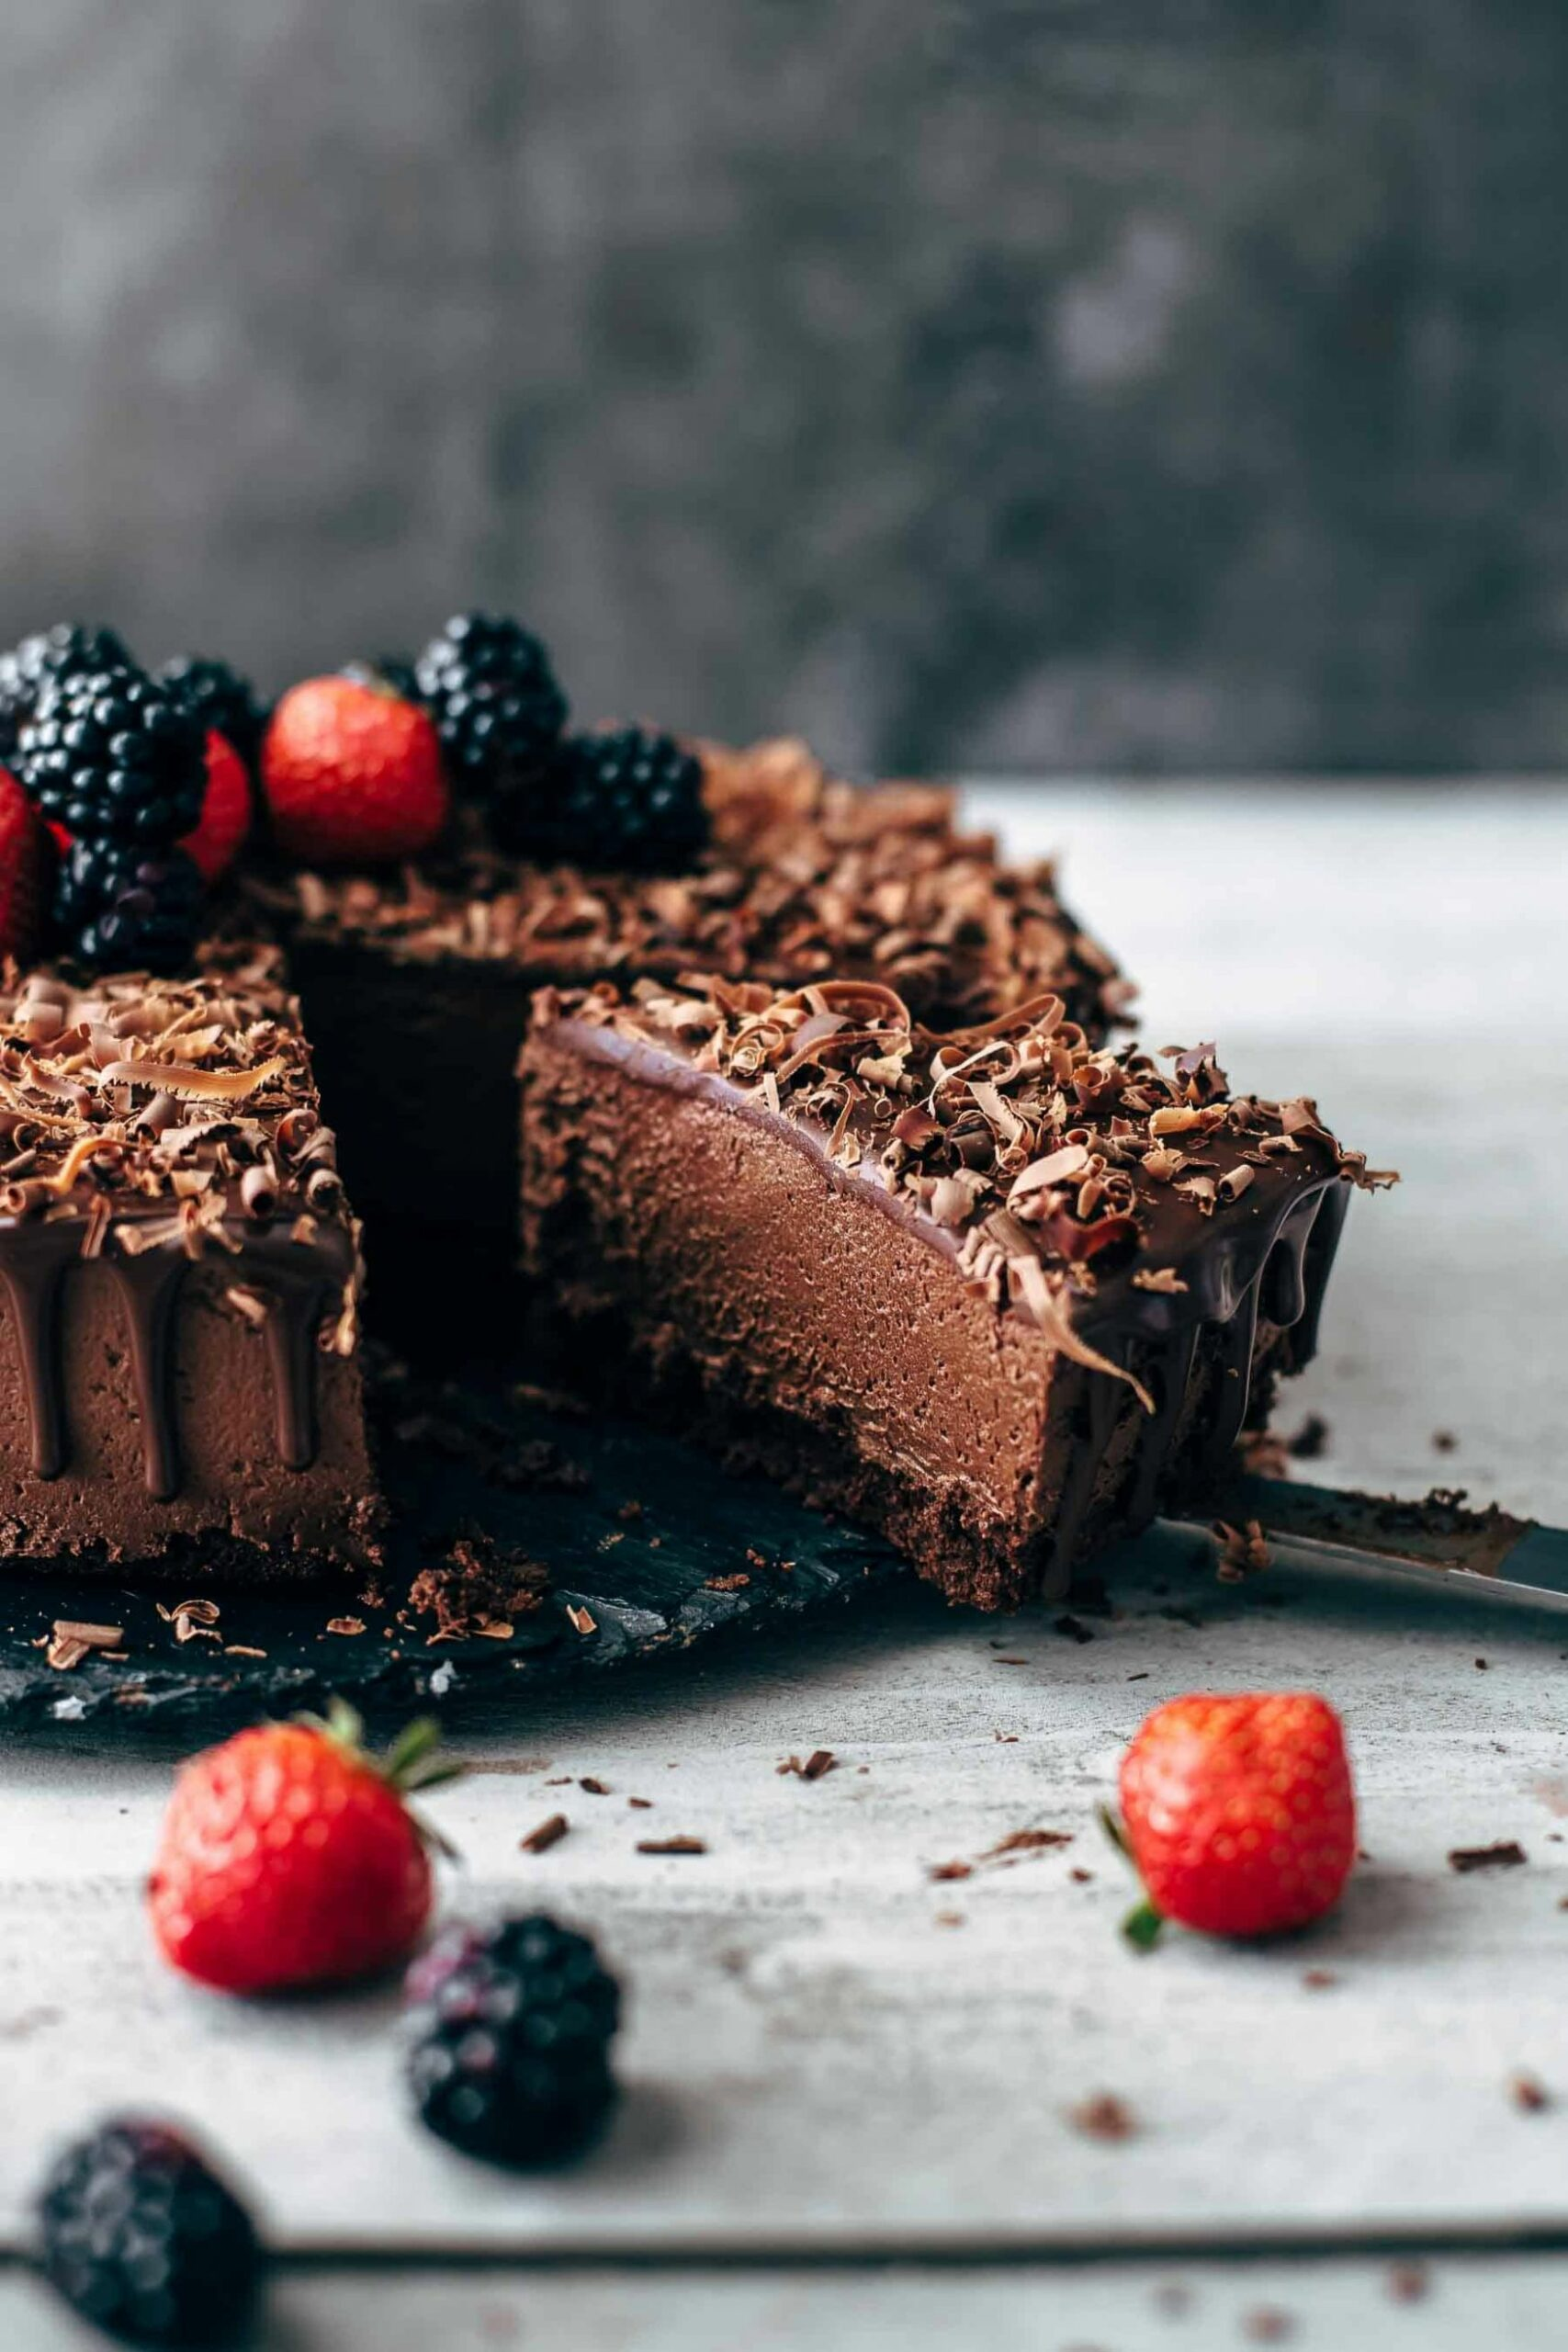 The Chocolate Mousse Cake Recipe - Cake Recipes Hard